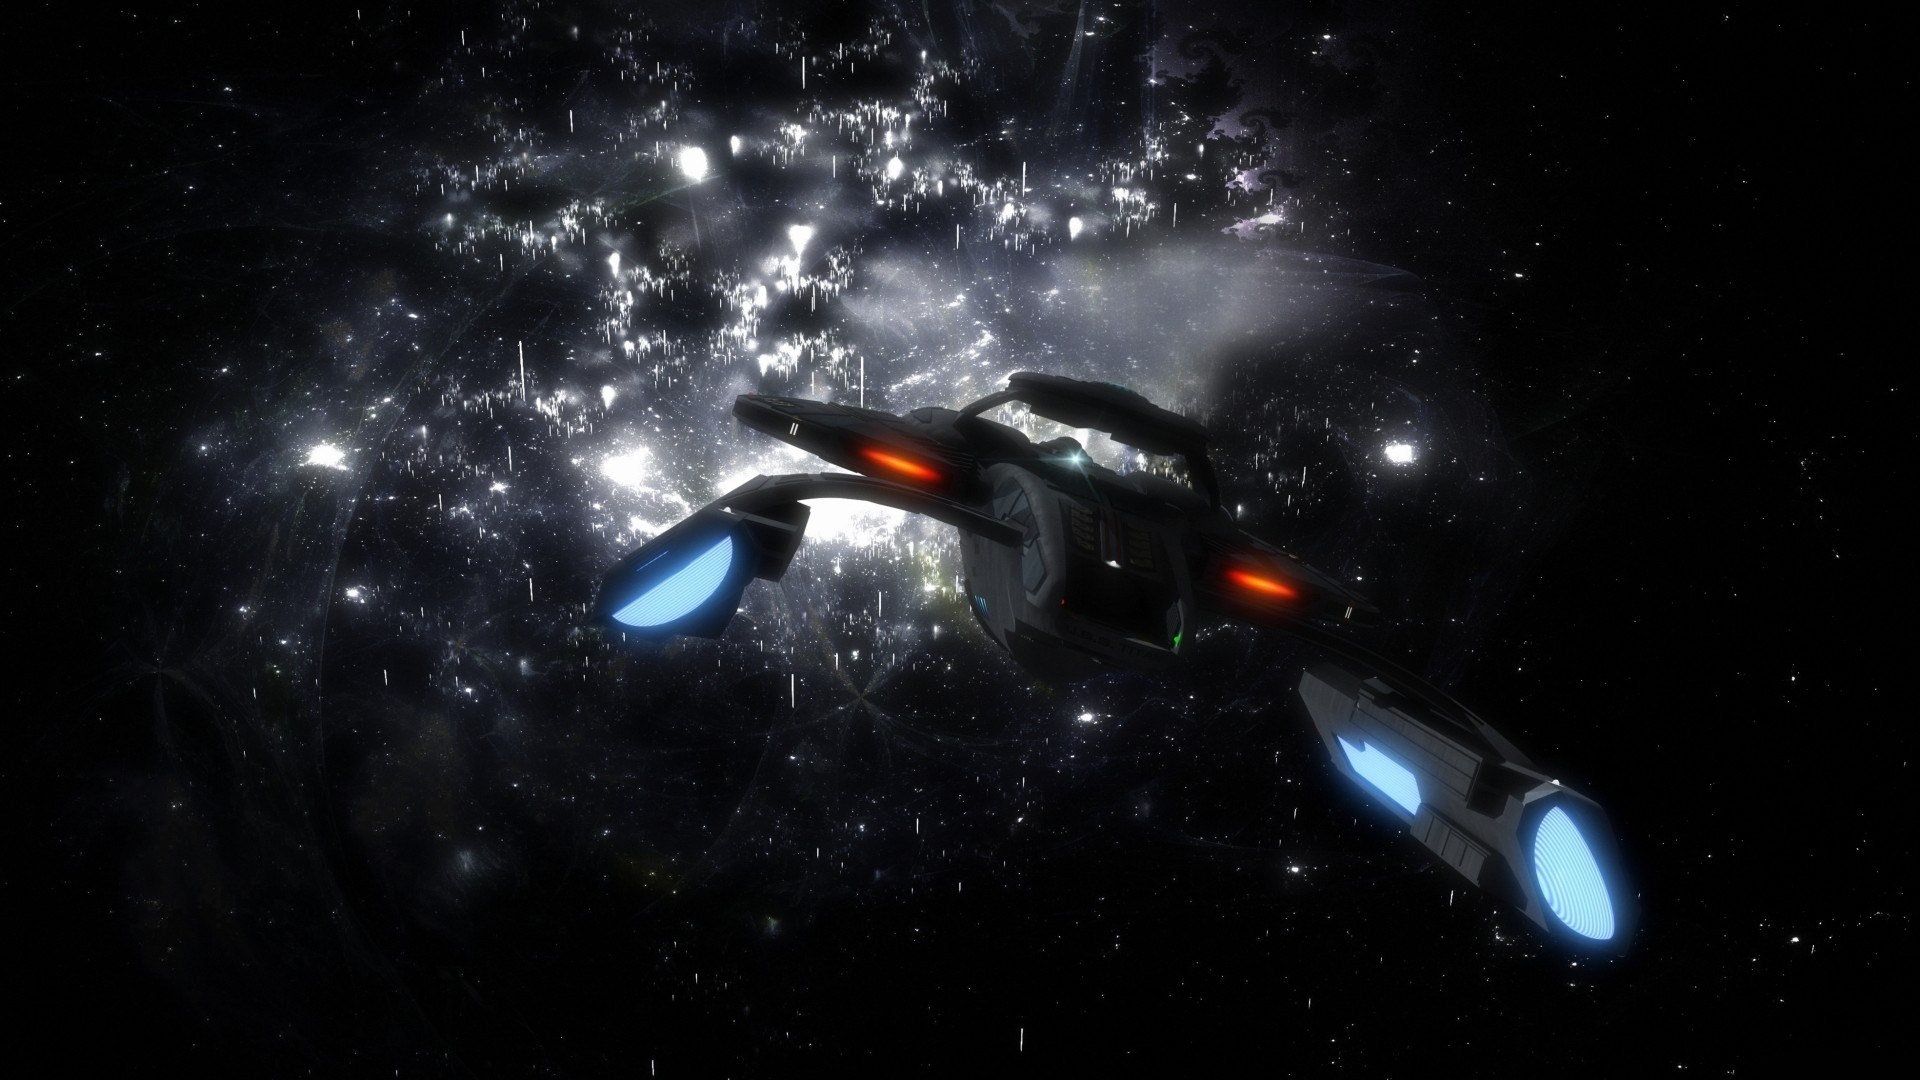 Star Trek Wallpaper For Desktop Background - Space Fantasy , HD Wallpaper & Backgrounds